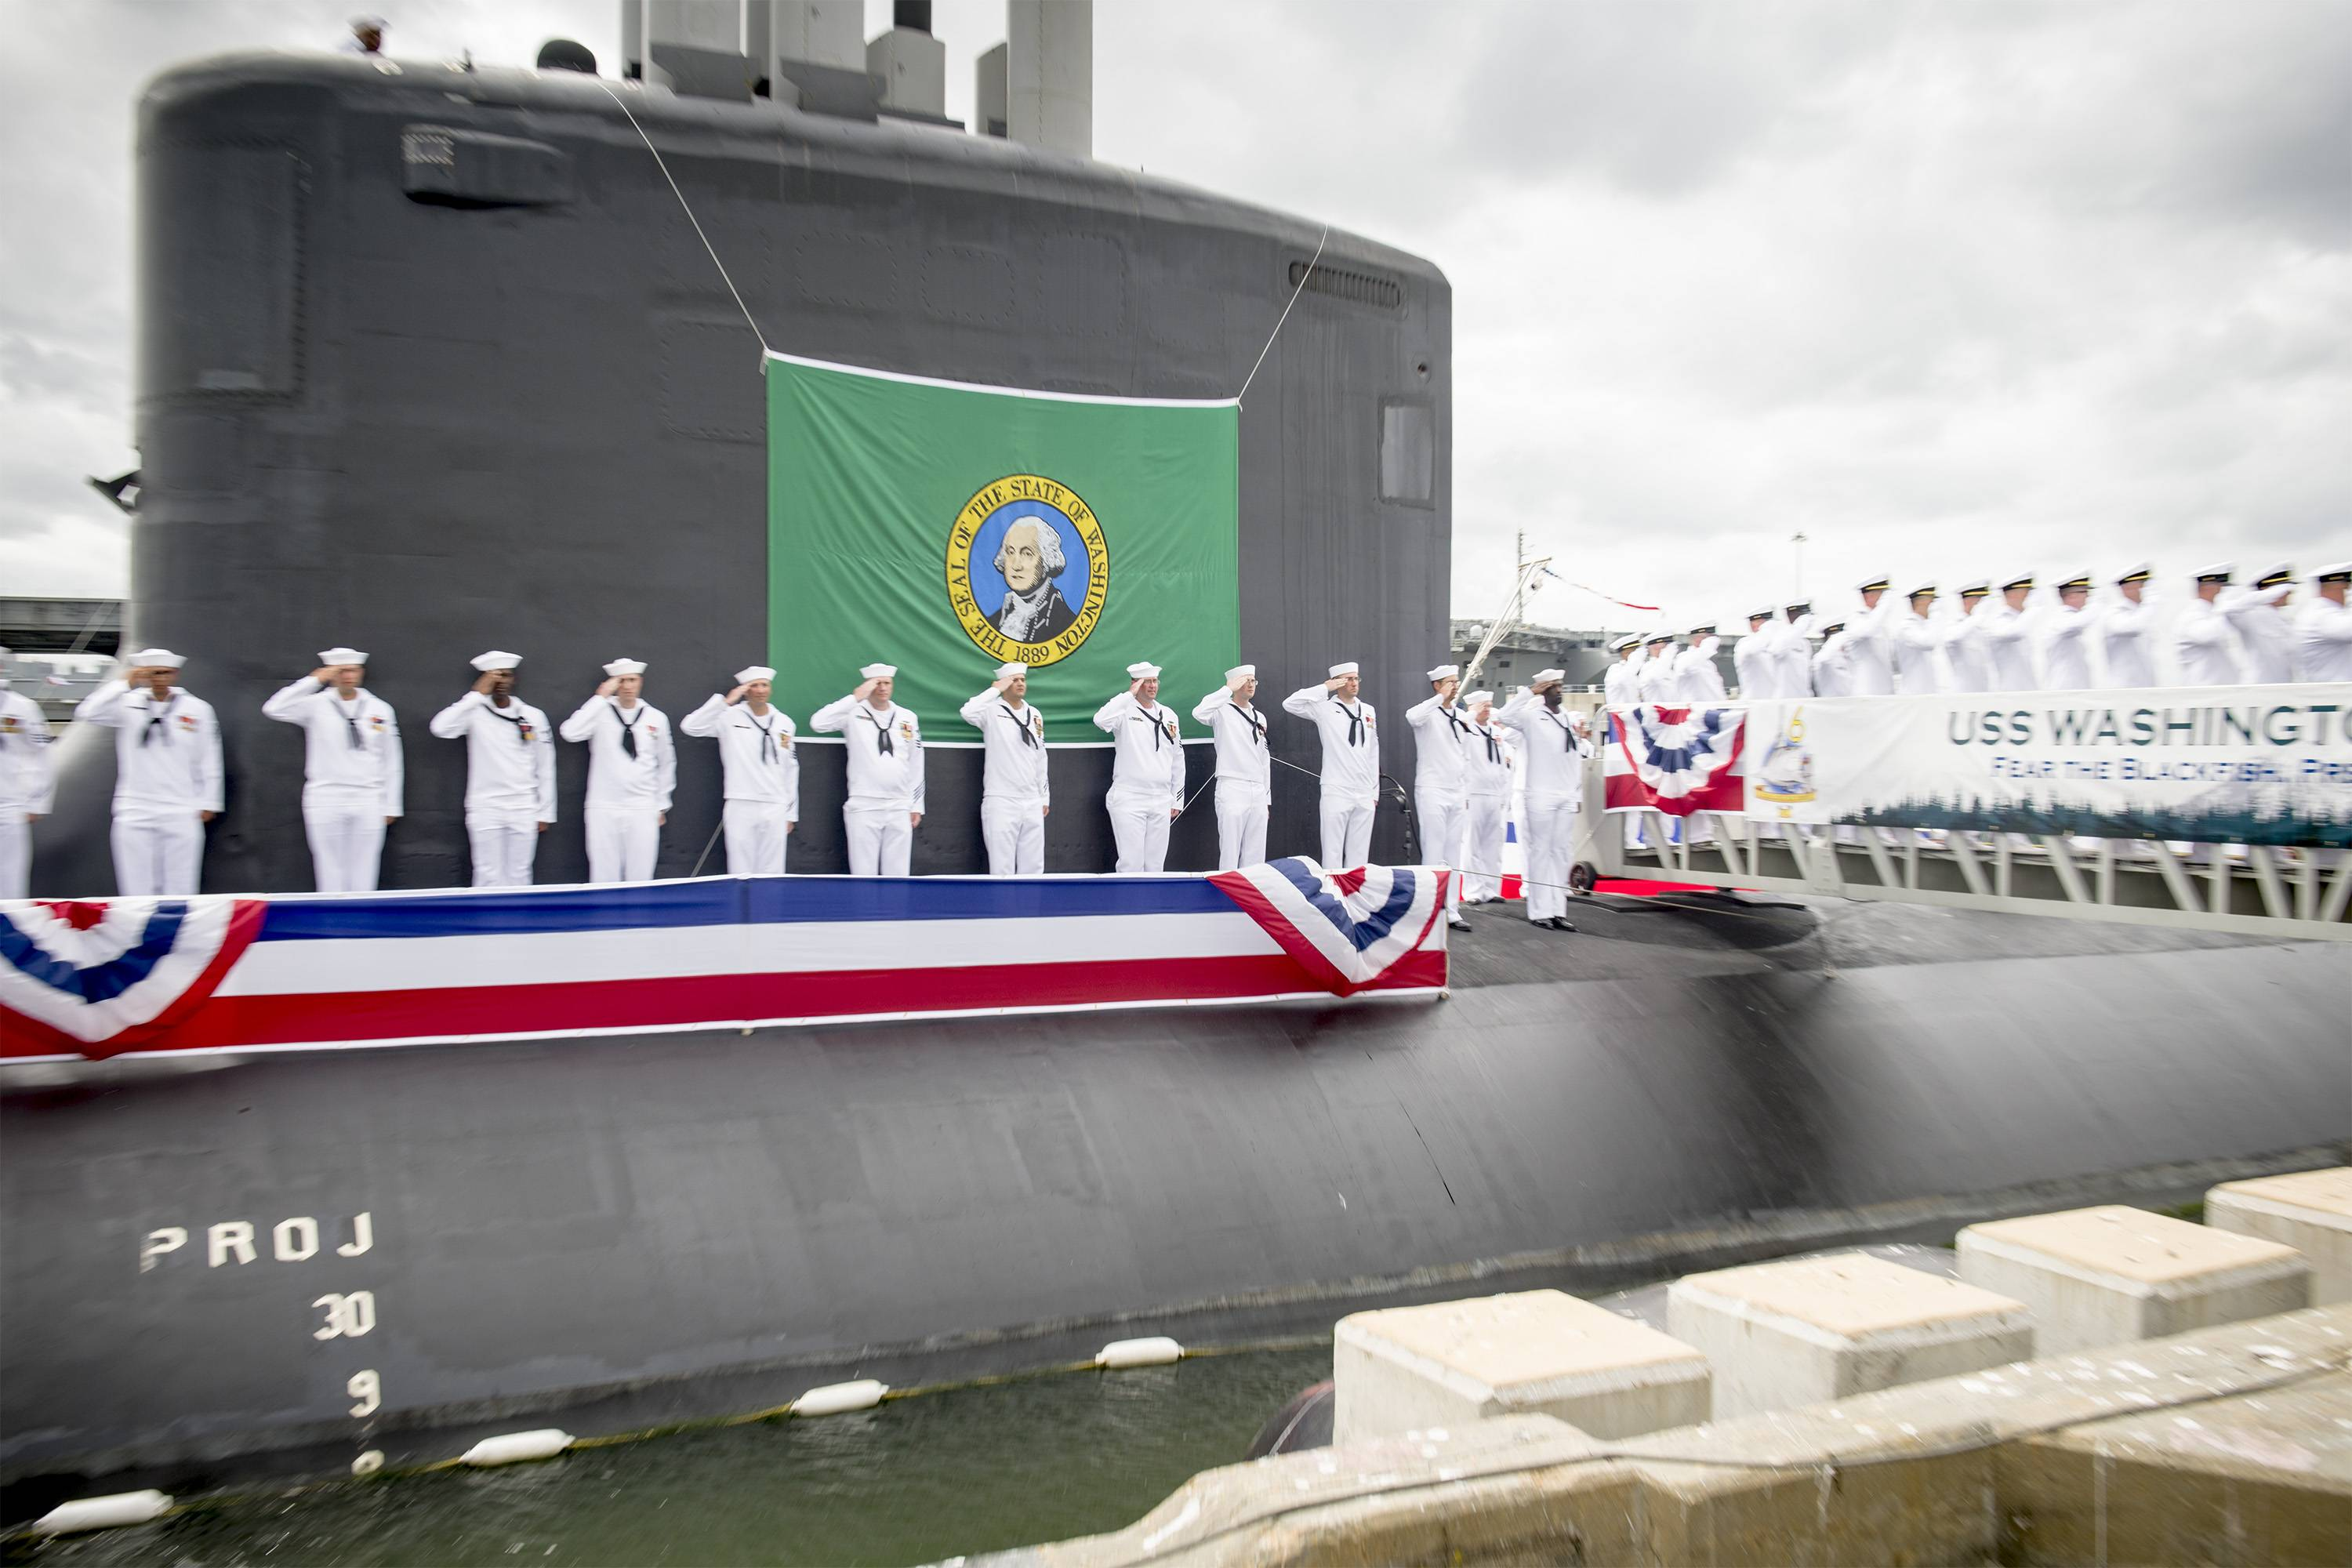 Sailors render a salute during the commissioning ceremony for the Virginia Class Submarine USS Washington at Naval Station Norfolk. Washington is the U.S. Navy's 14th Virginia-class attack submarine and the fourth U.S. Navy ship named for